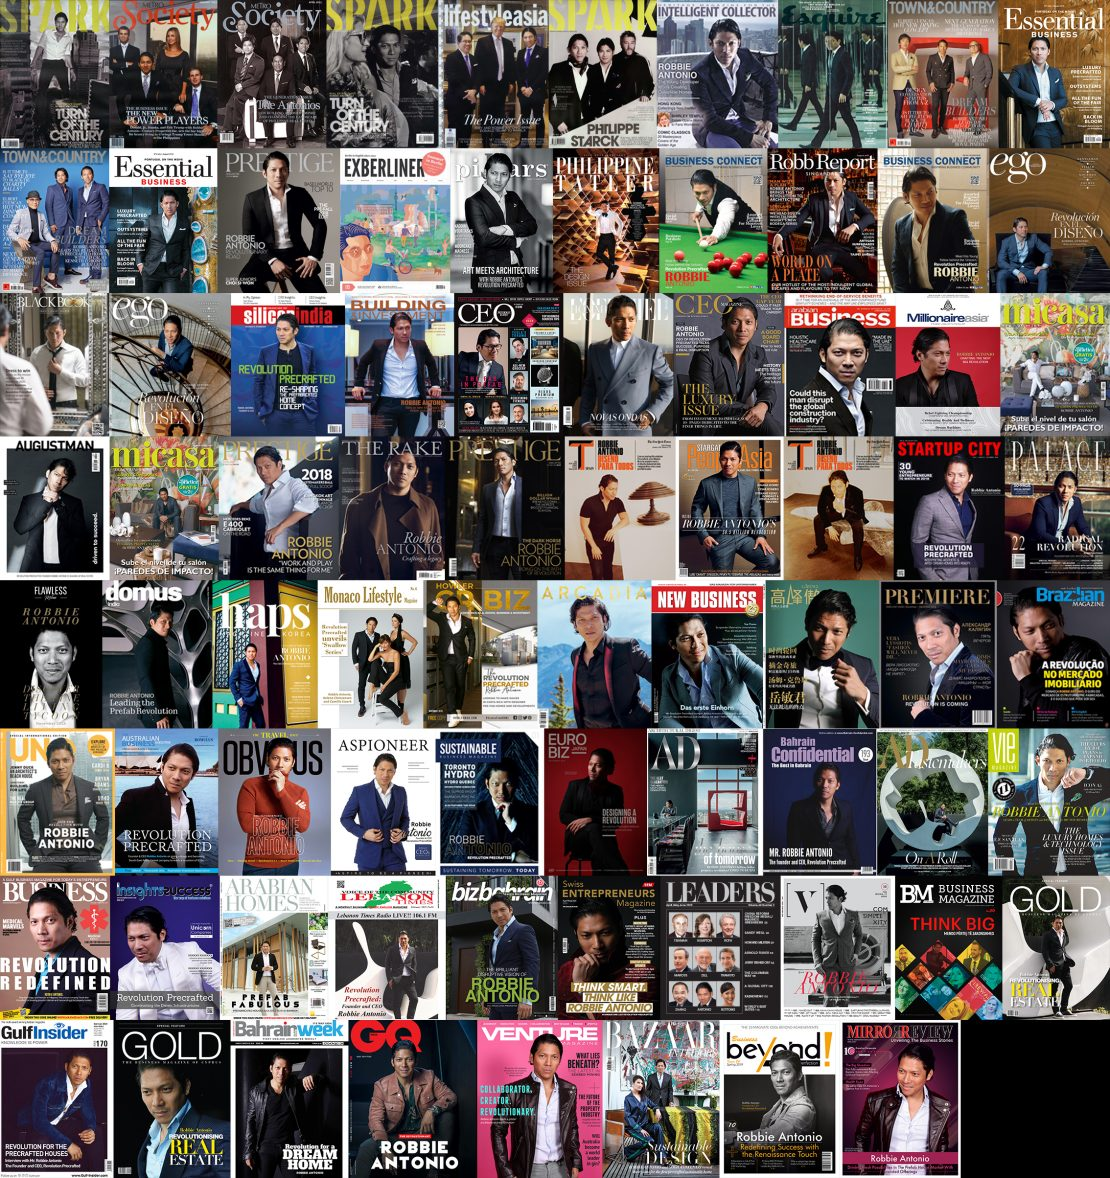 MAGAZINE COVERS COLLAGE